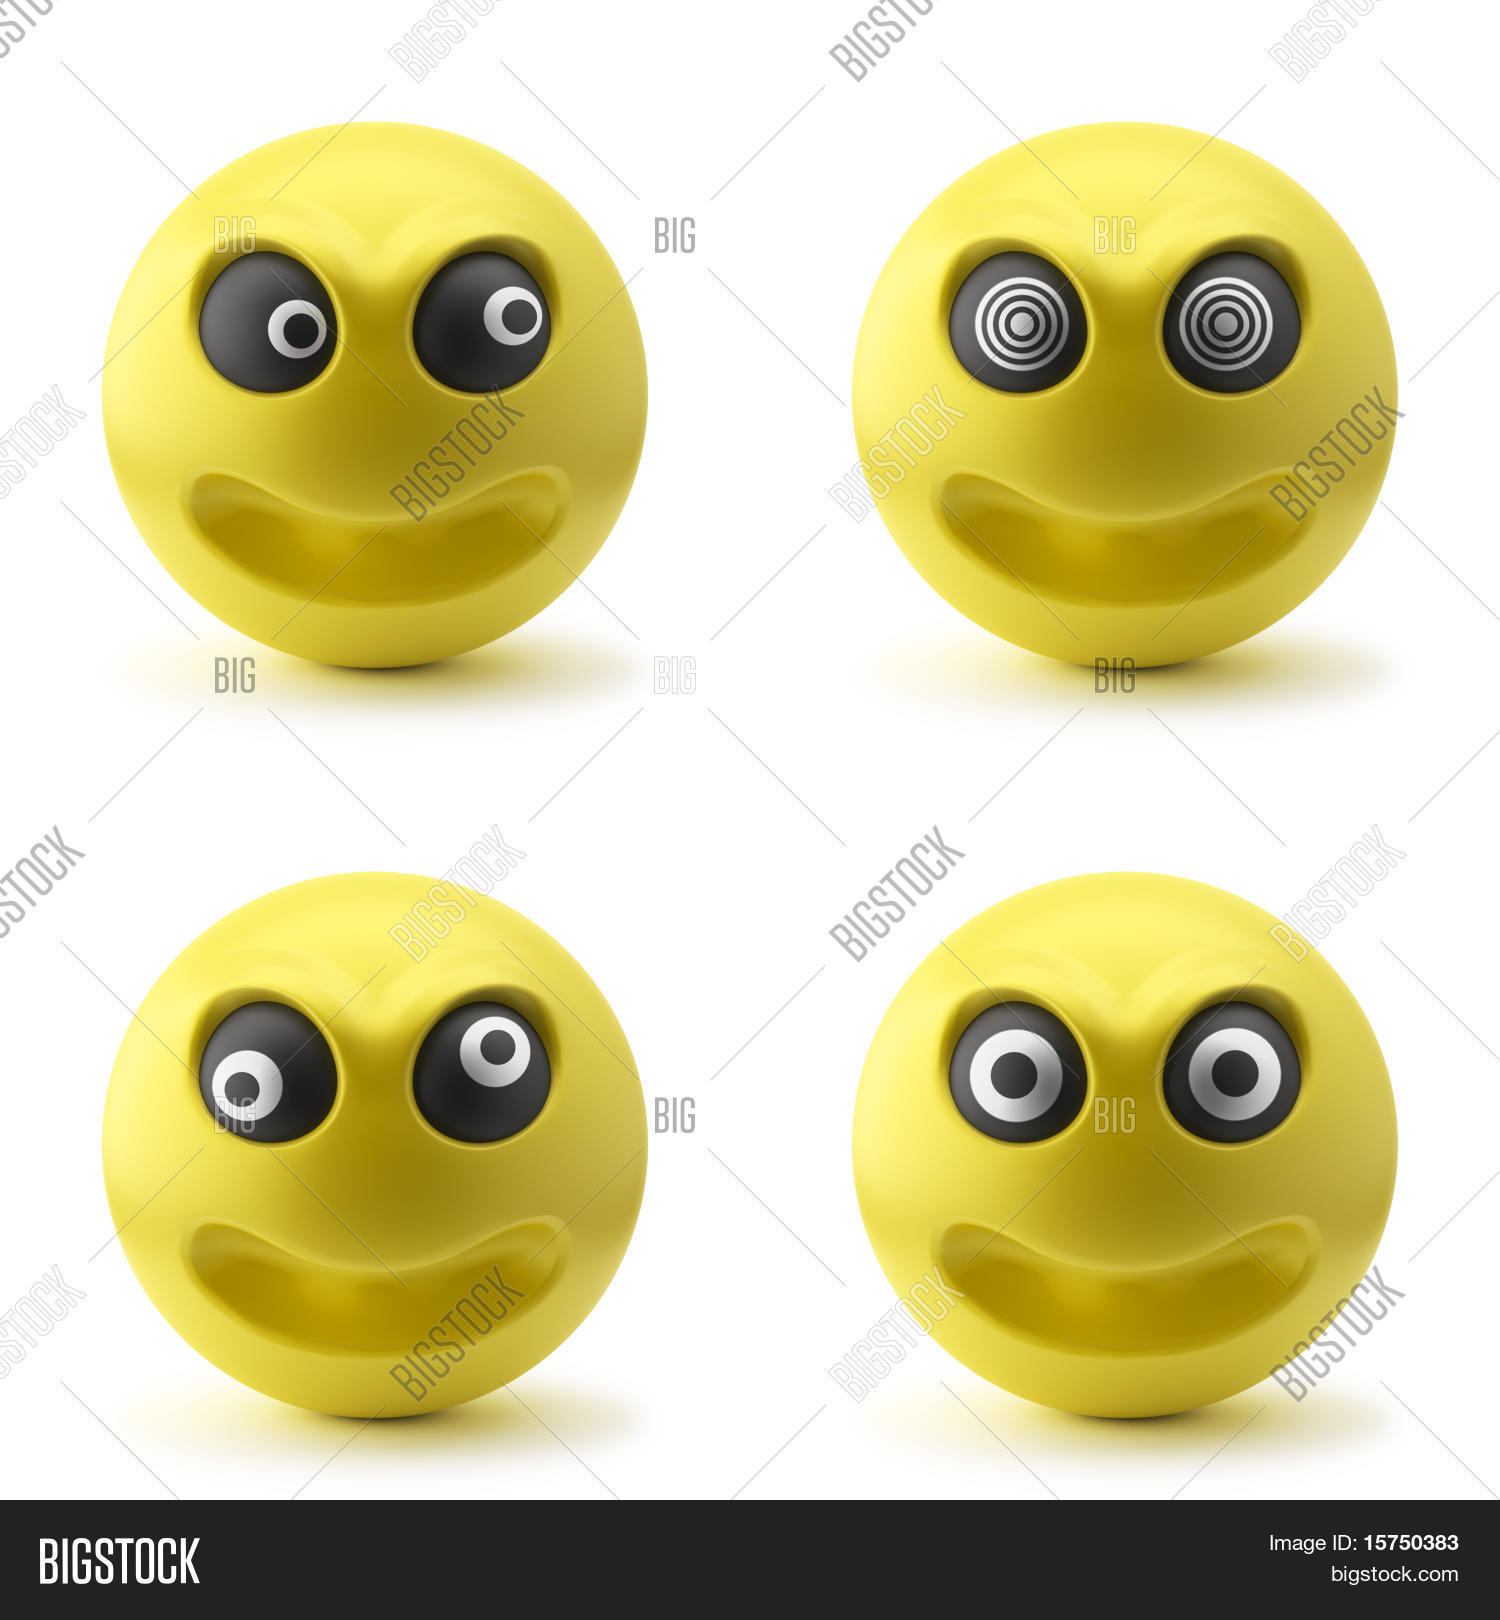 3d Smileys Image & Photo (Free Trial) | Bigstock on free icons, free clip art smiley faces, free music smileys, free animal smileys, free dancing smileys, free graphics smileys, sports smileys, free halloween smiley faces, office smileys, free characters, free emoticons, animated smileys, free party smileys,